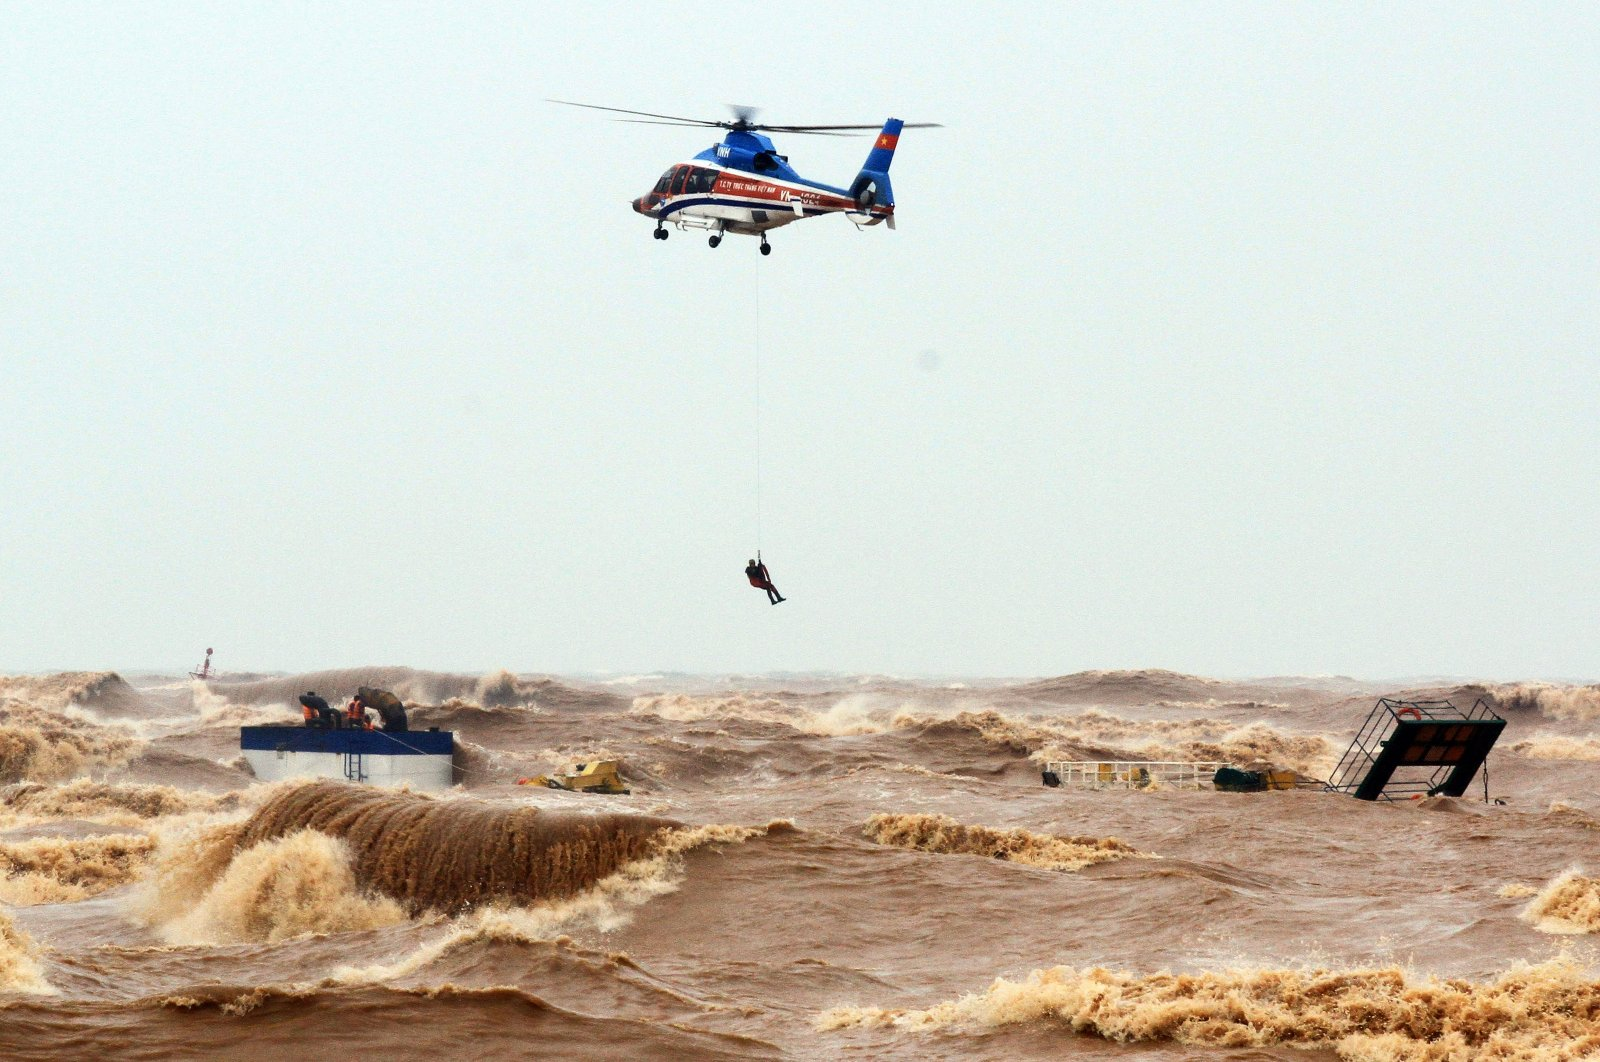 A defense ministry helicopter rescues stranded crew members at sea, Quang Tri province, Vietnam, Oct. 11, 2020. (EPA Photo)